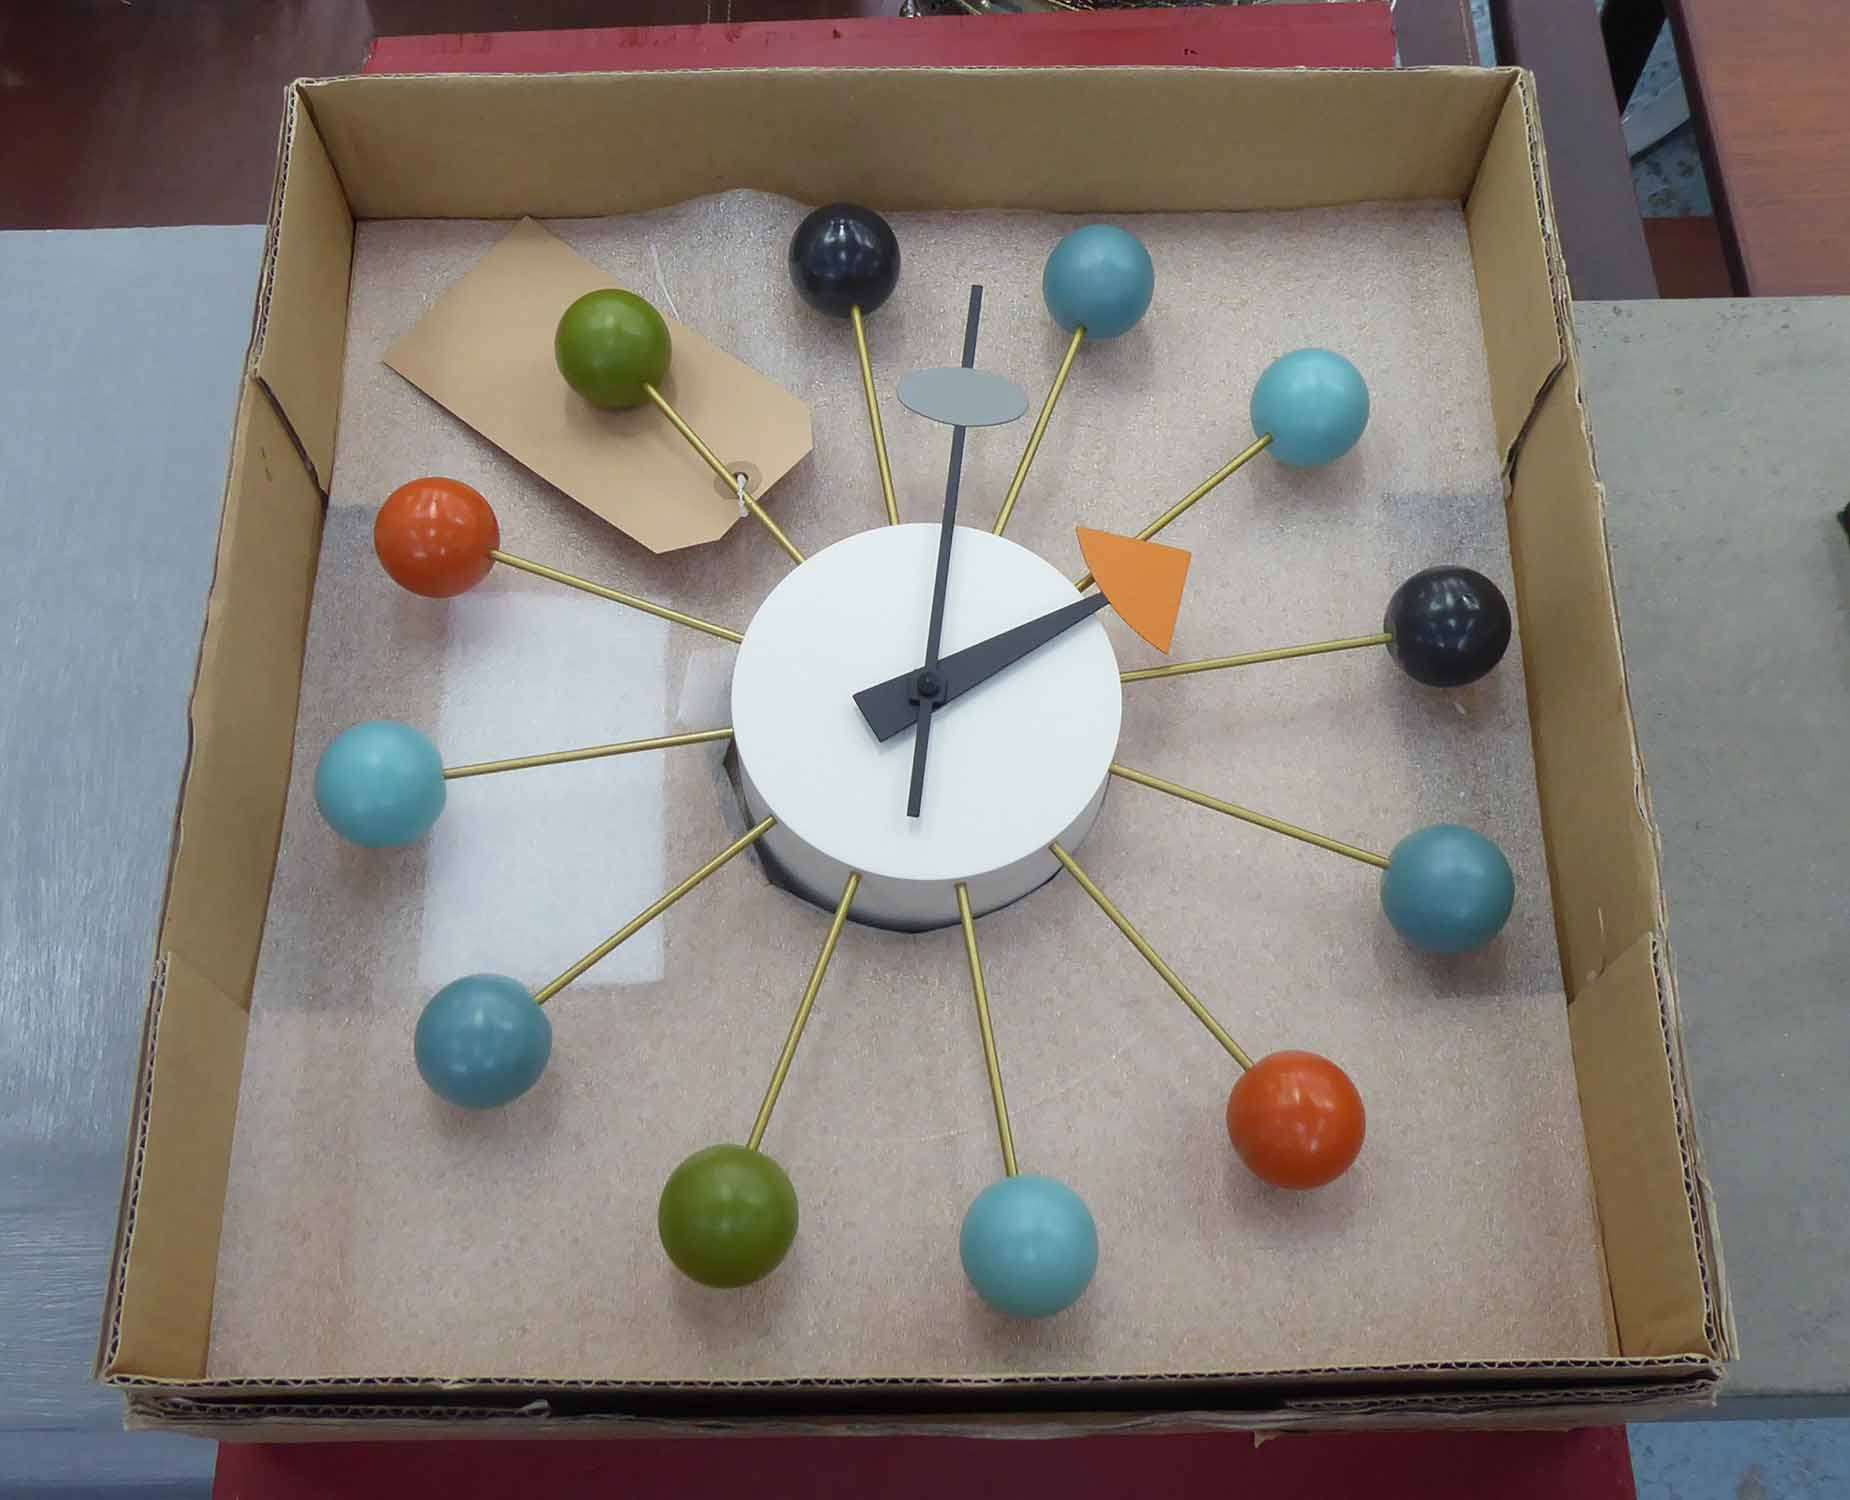 Lot 7 - VITRA BALL CLOCK BY GEORGE NELSON, with box, 32cm Diam.